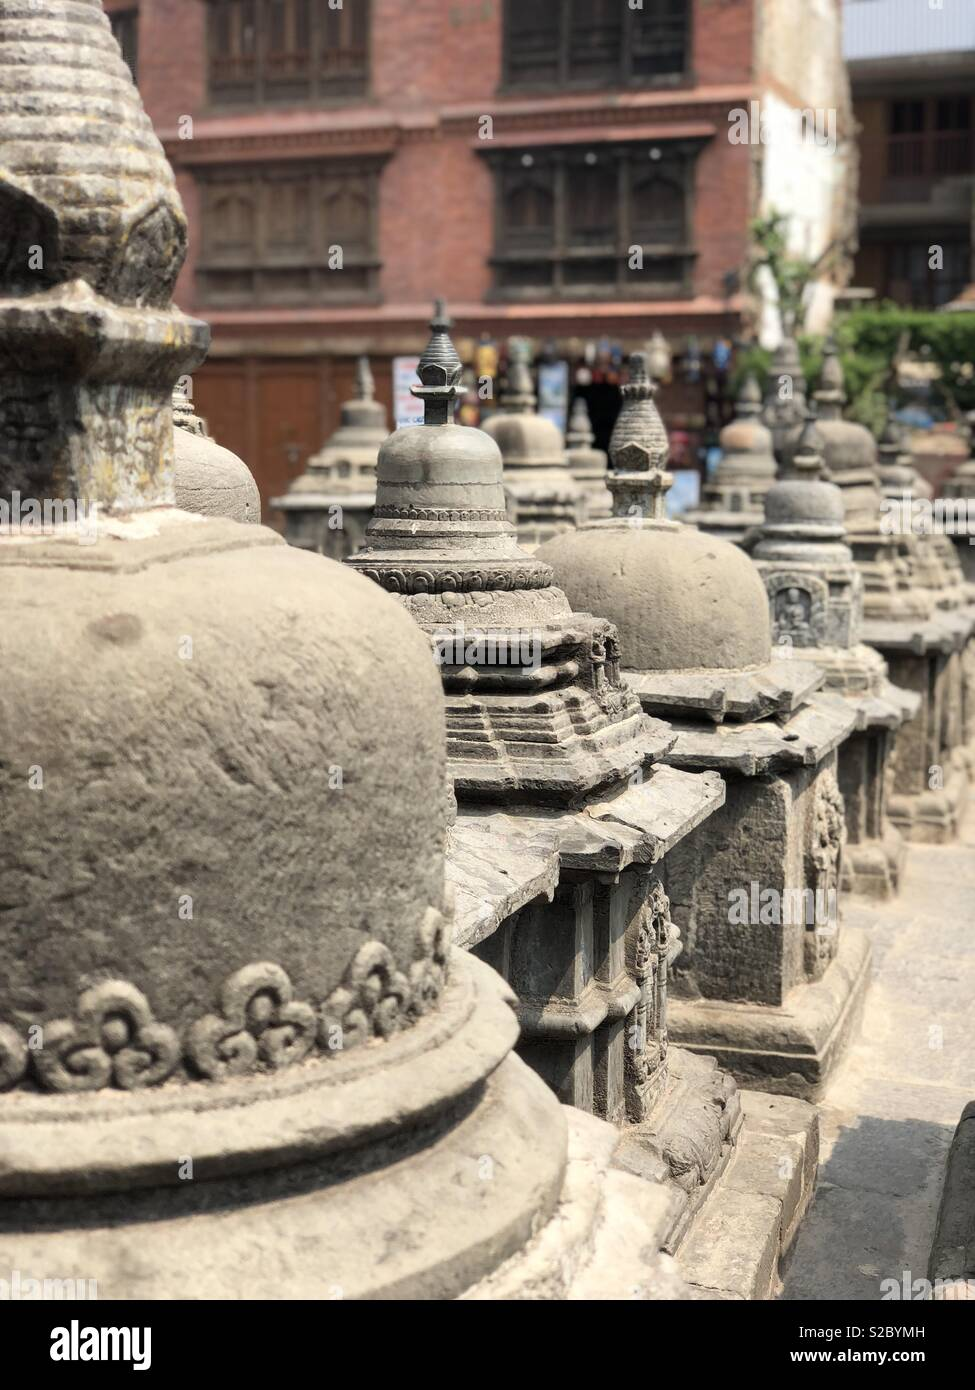 Temple in Nepal - Stock Image